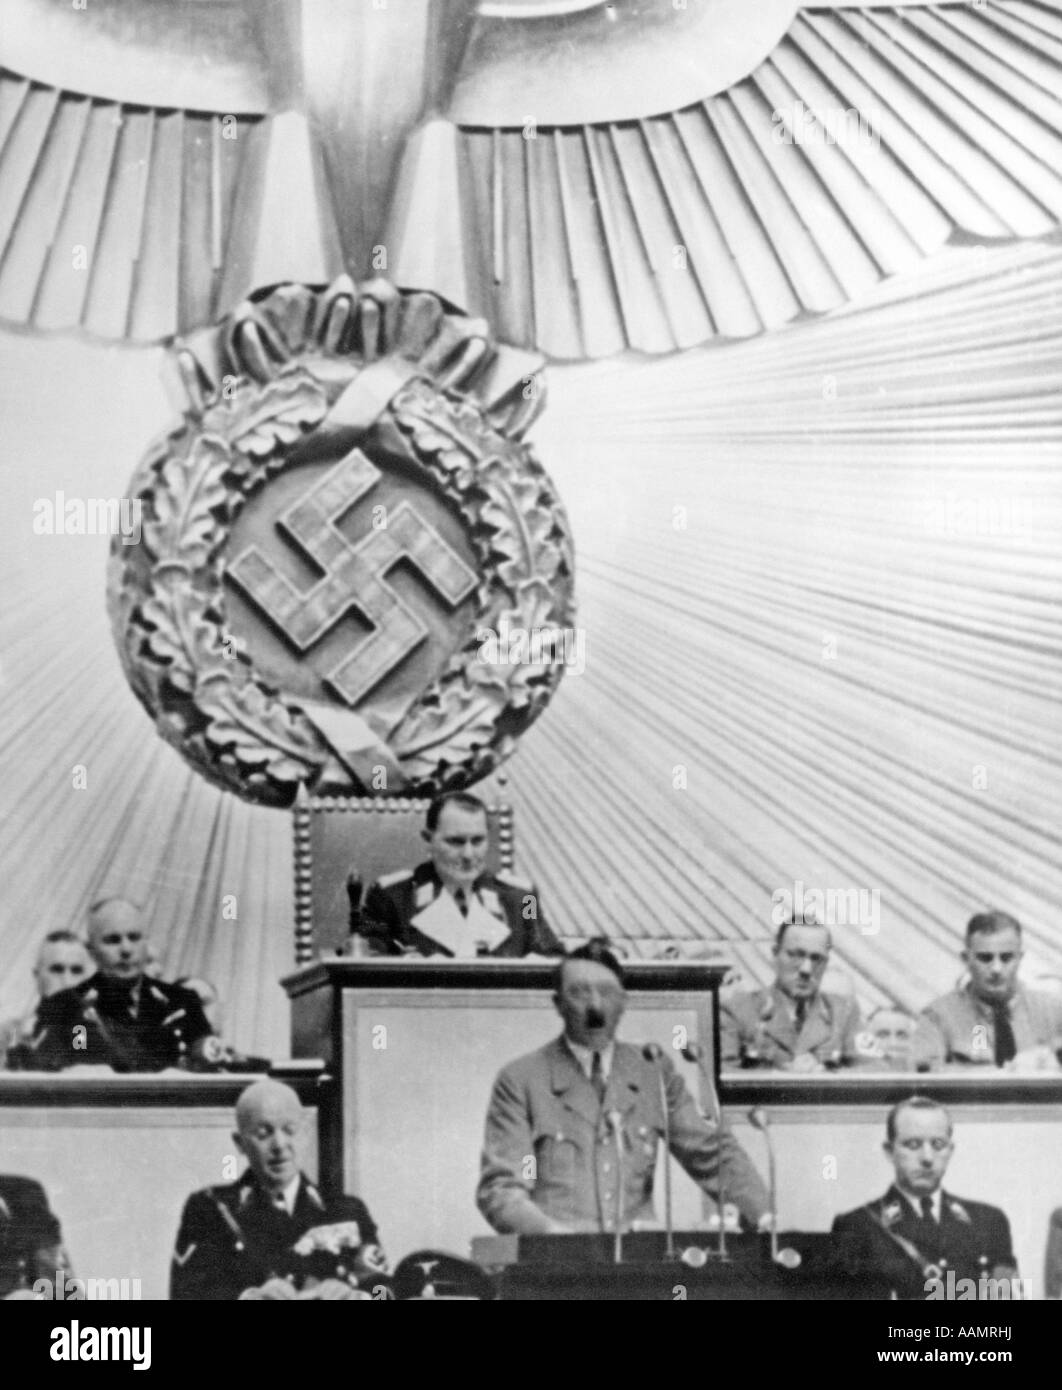 1930s ADOLPH HITLER PODIUM SPEAKING UNDERNEATH LARGE SWASTIKA AT REICHSTAG - Stock Image